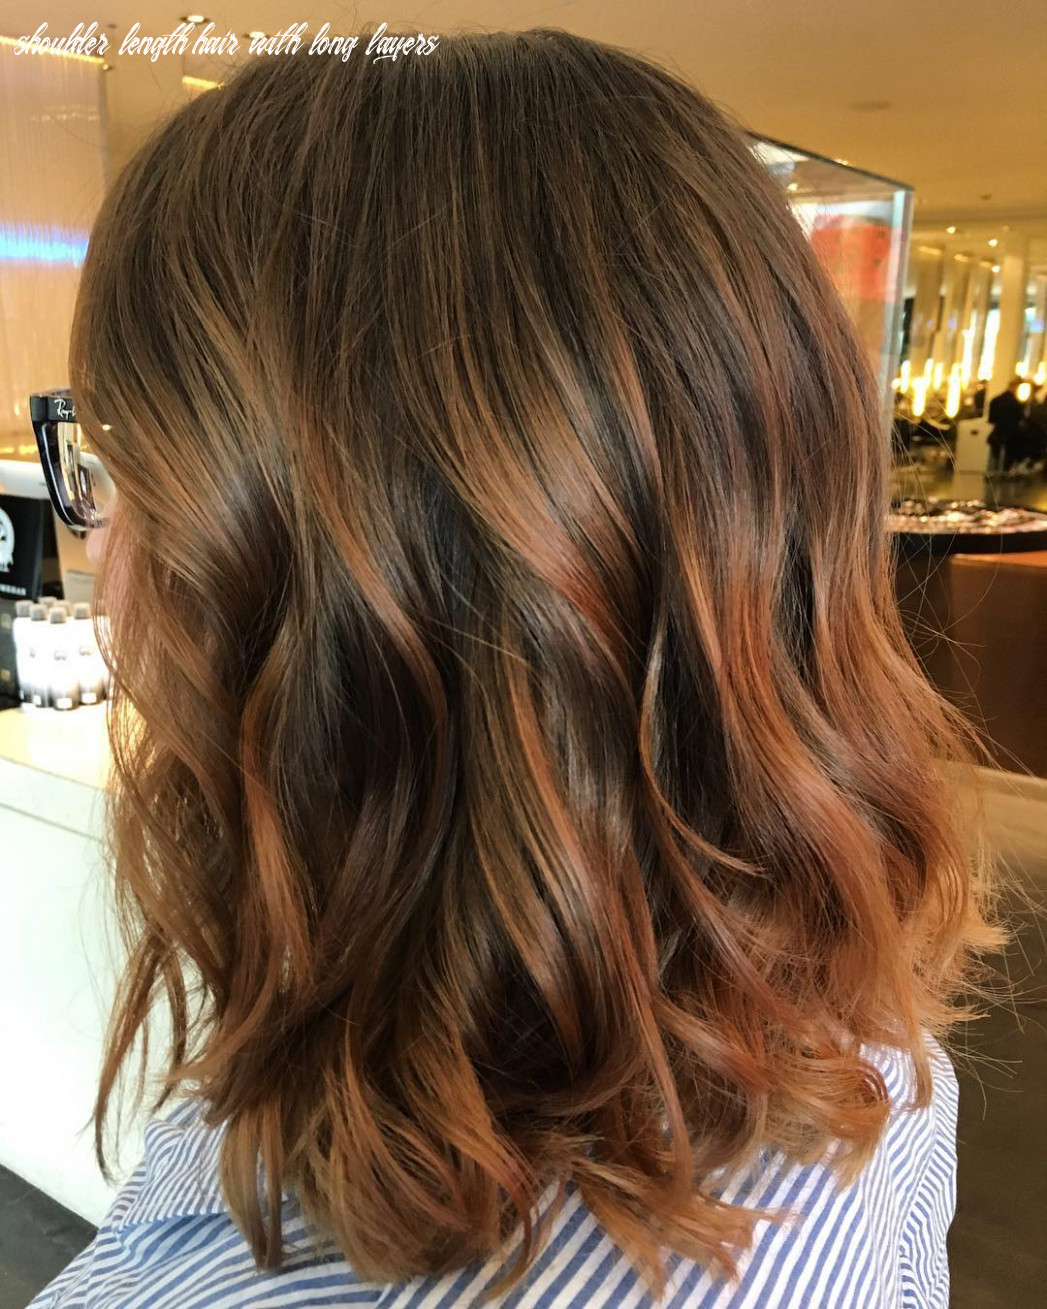 11 best medium length layered hairstyles 11 hairstyles weekly shoulder length hair with long layers